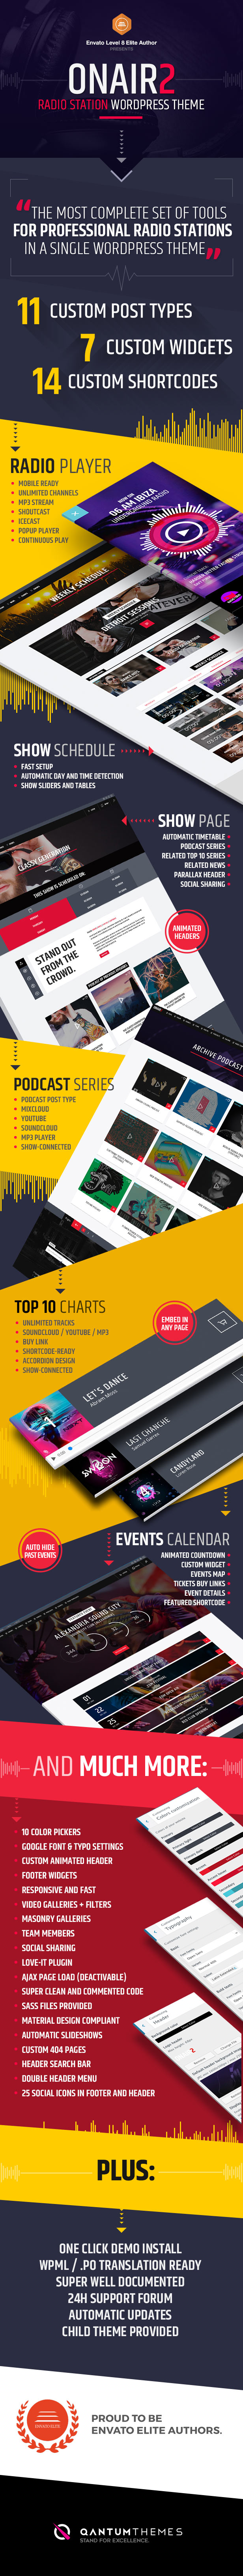 Onair2: Radio Station WordPress Theme